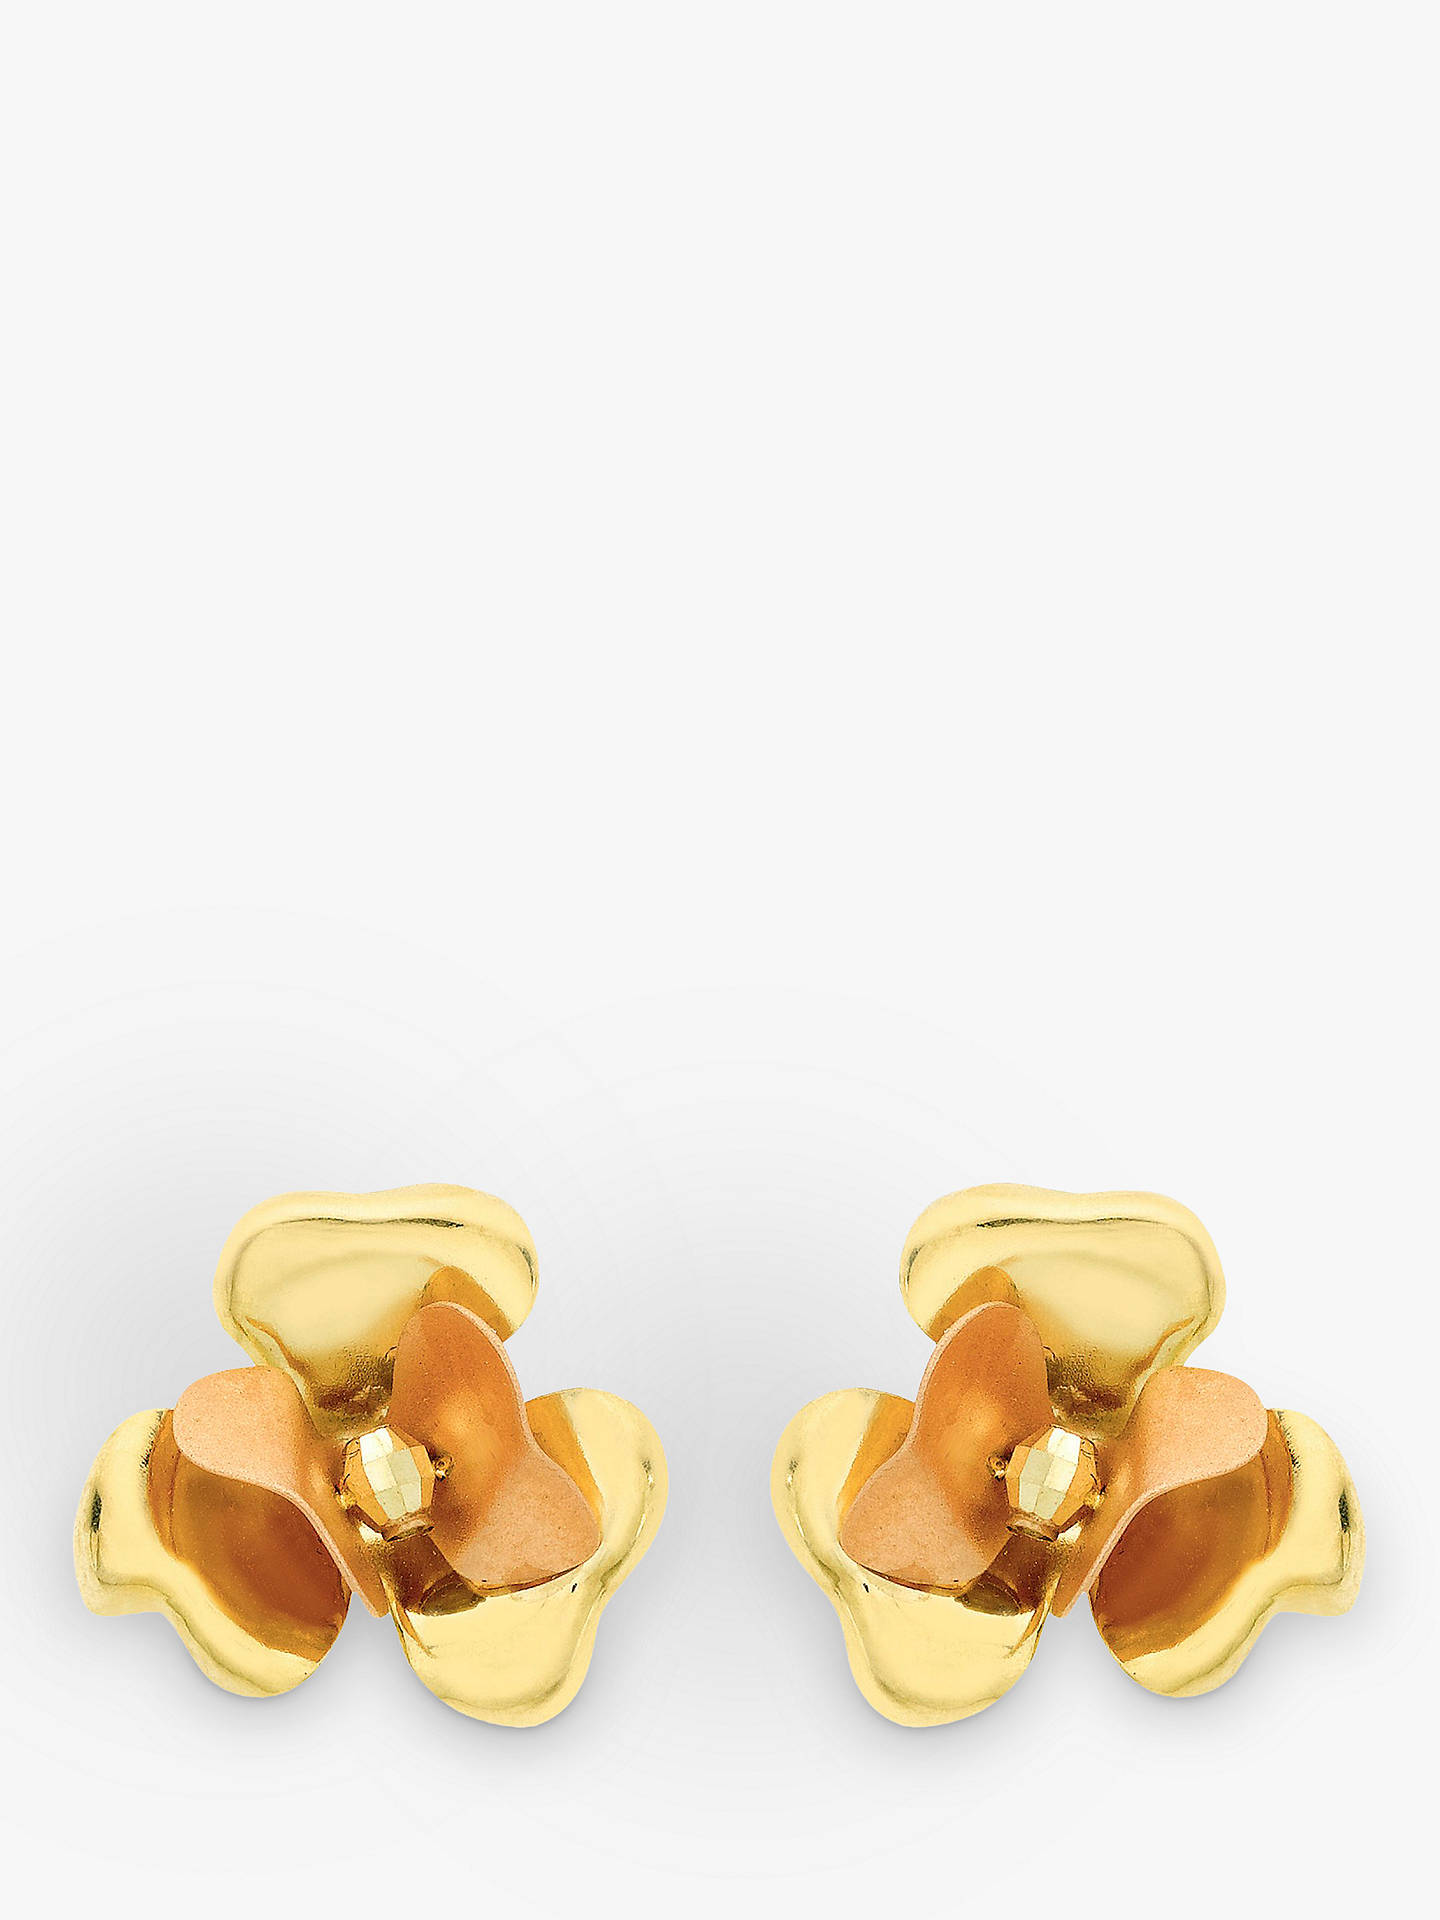 4dd0af664 Buy IBB 9ct Yellow Gold Flower Stud Earrings, Yellow Gold Online at  johnlewis.com ...